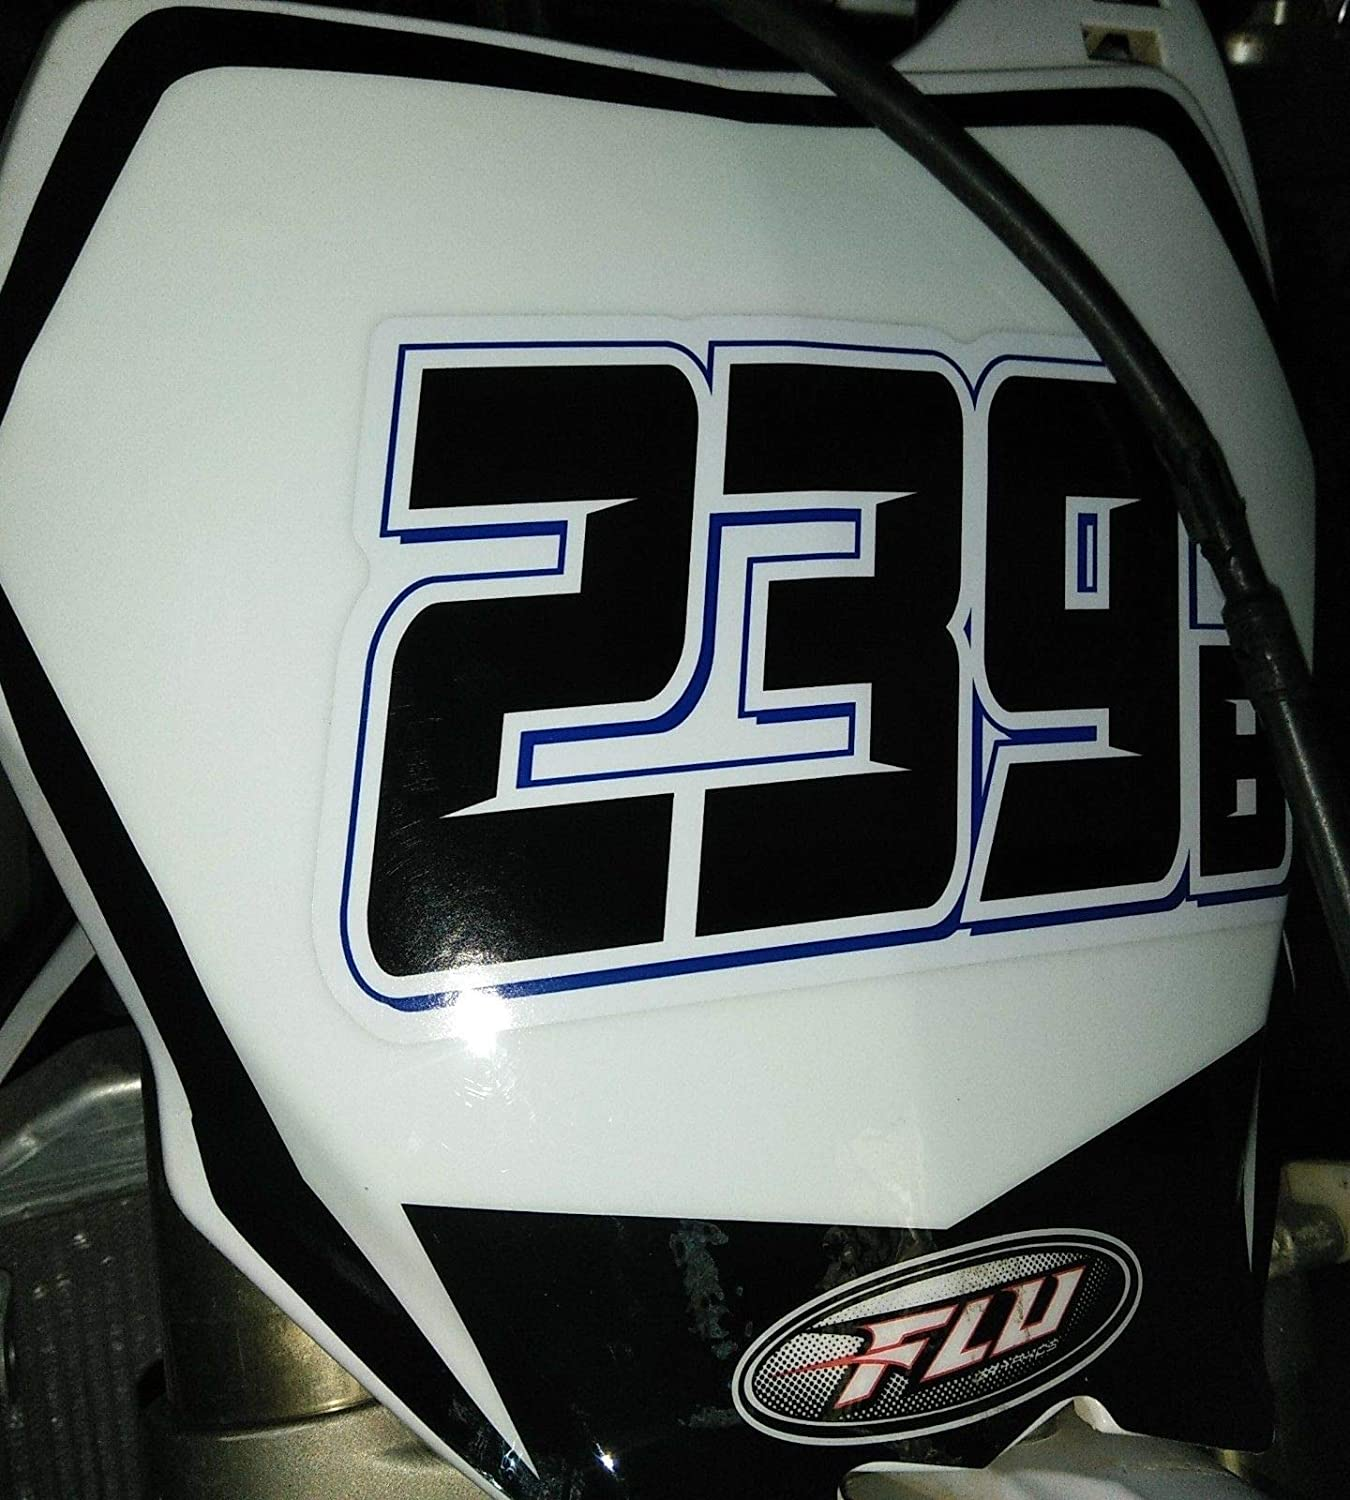 Set of 3 Multicolored Race Numbers MX /& ATV Number Plate Decals You Pick Your Number /& Colors